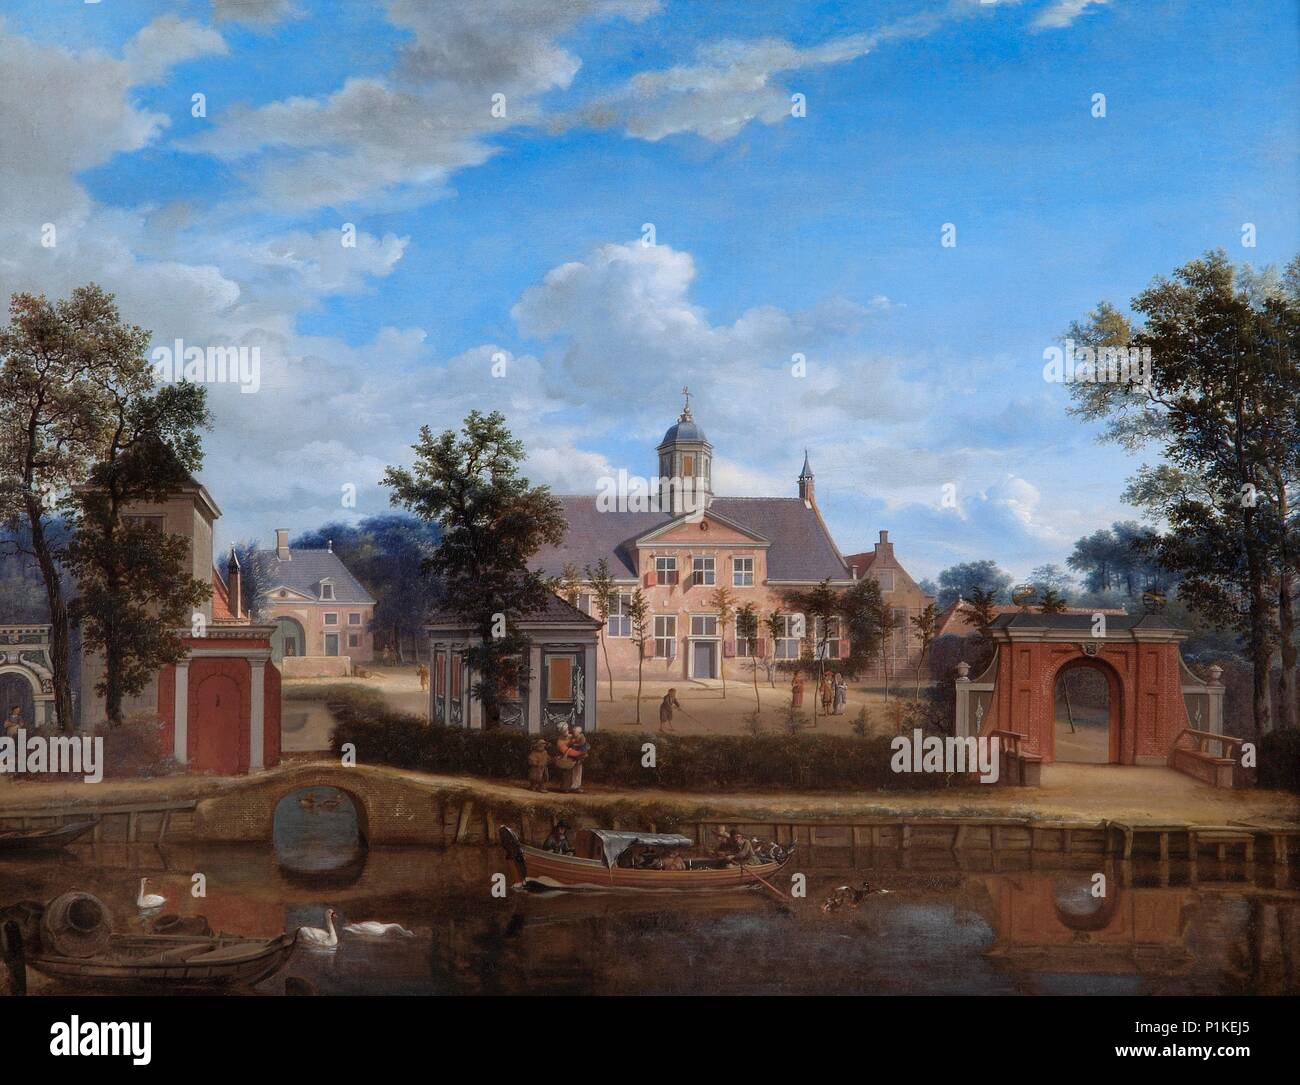 'The Chateau of Goudestein, on the River Vecht, near Maarsen', c1674. Painting in Apsley House, London. - Stock Image